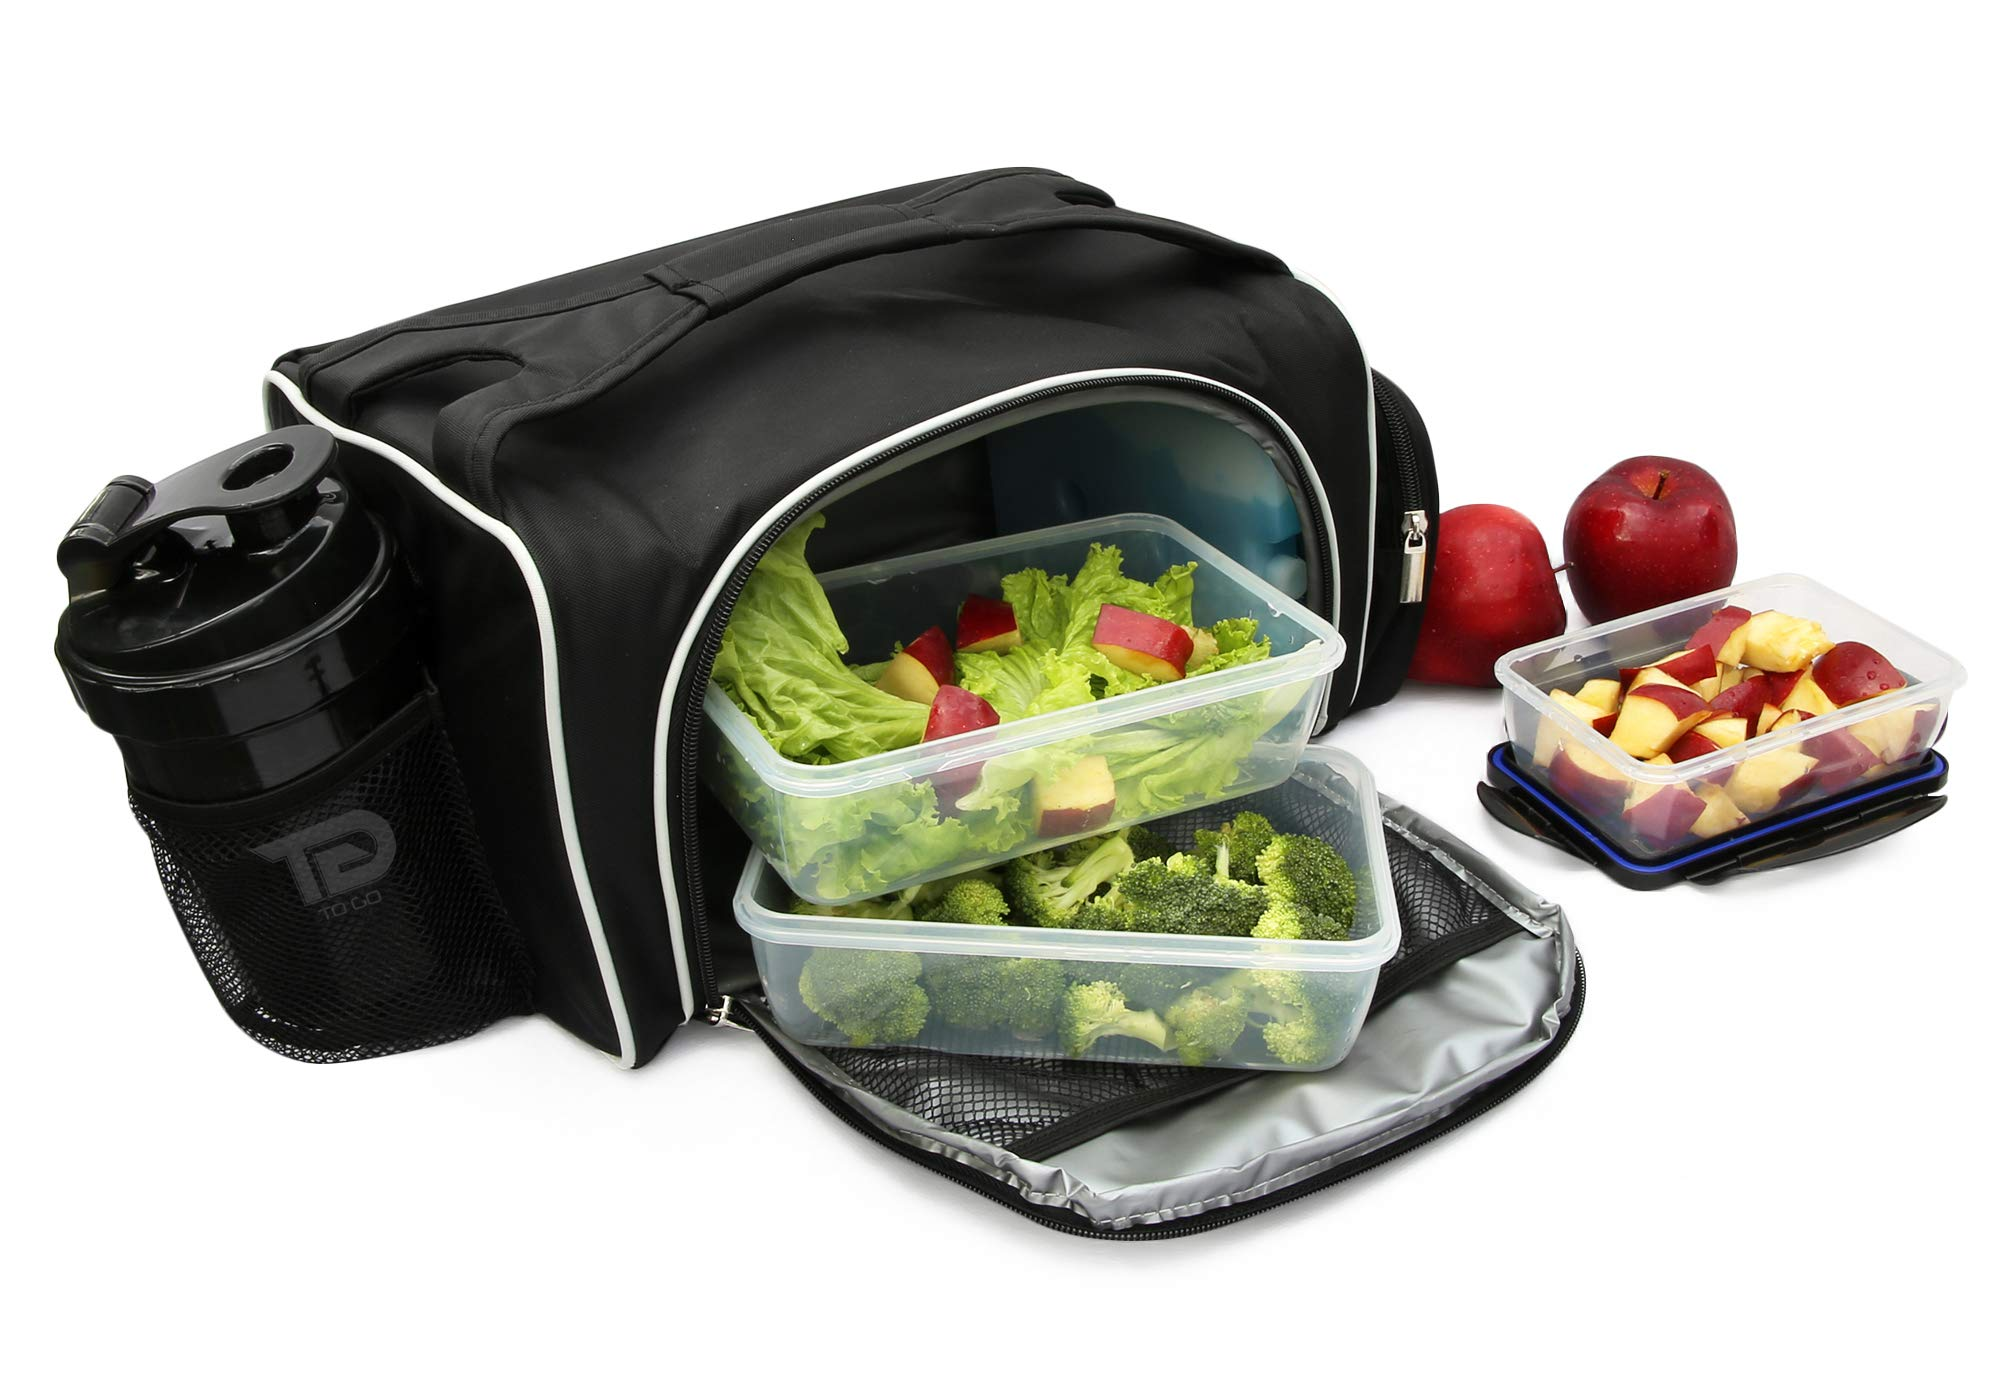 Meal Prep Bag By TO GO Insulated Lunch Meals Bag W/6 Portion Control Containers,2 ICE PACKS, Shaker, Pill Box,With an Adjustable shoulder. bag for meals (Black/new) by TO GO (Image #6)